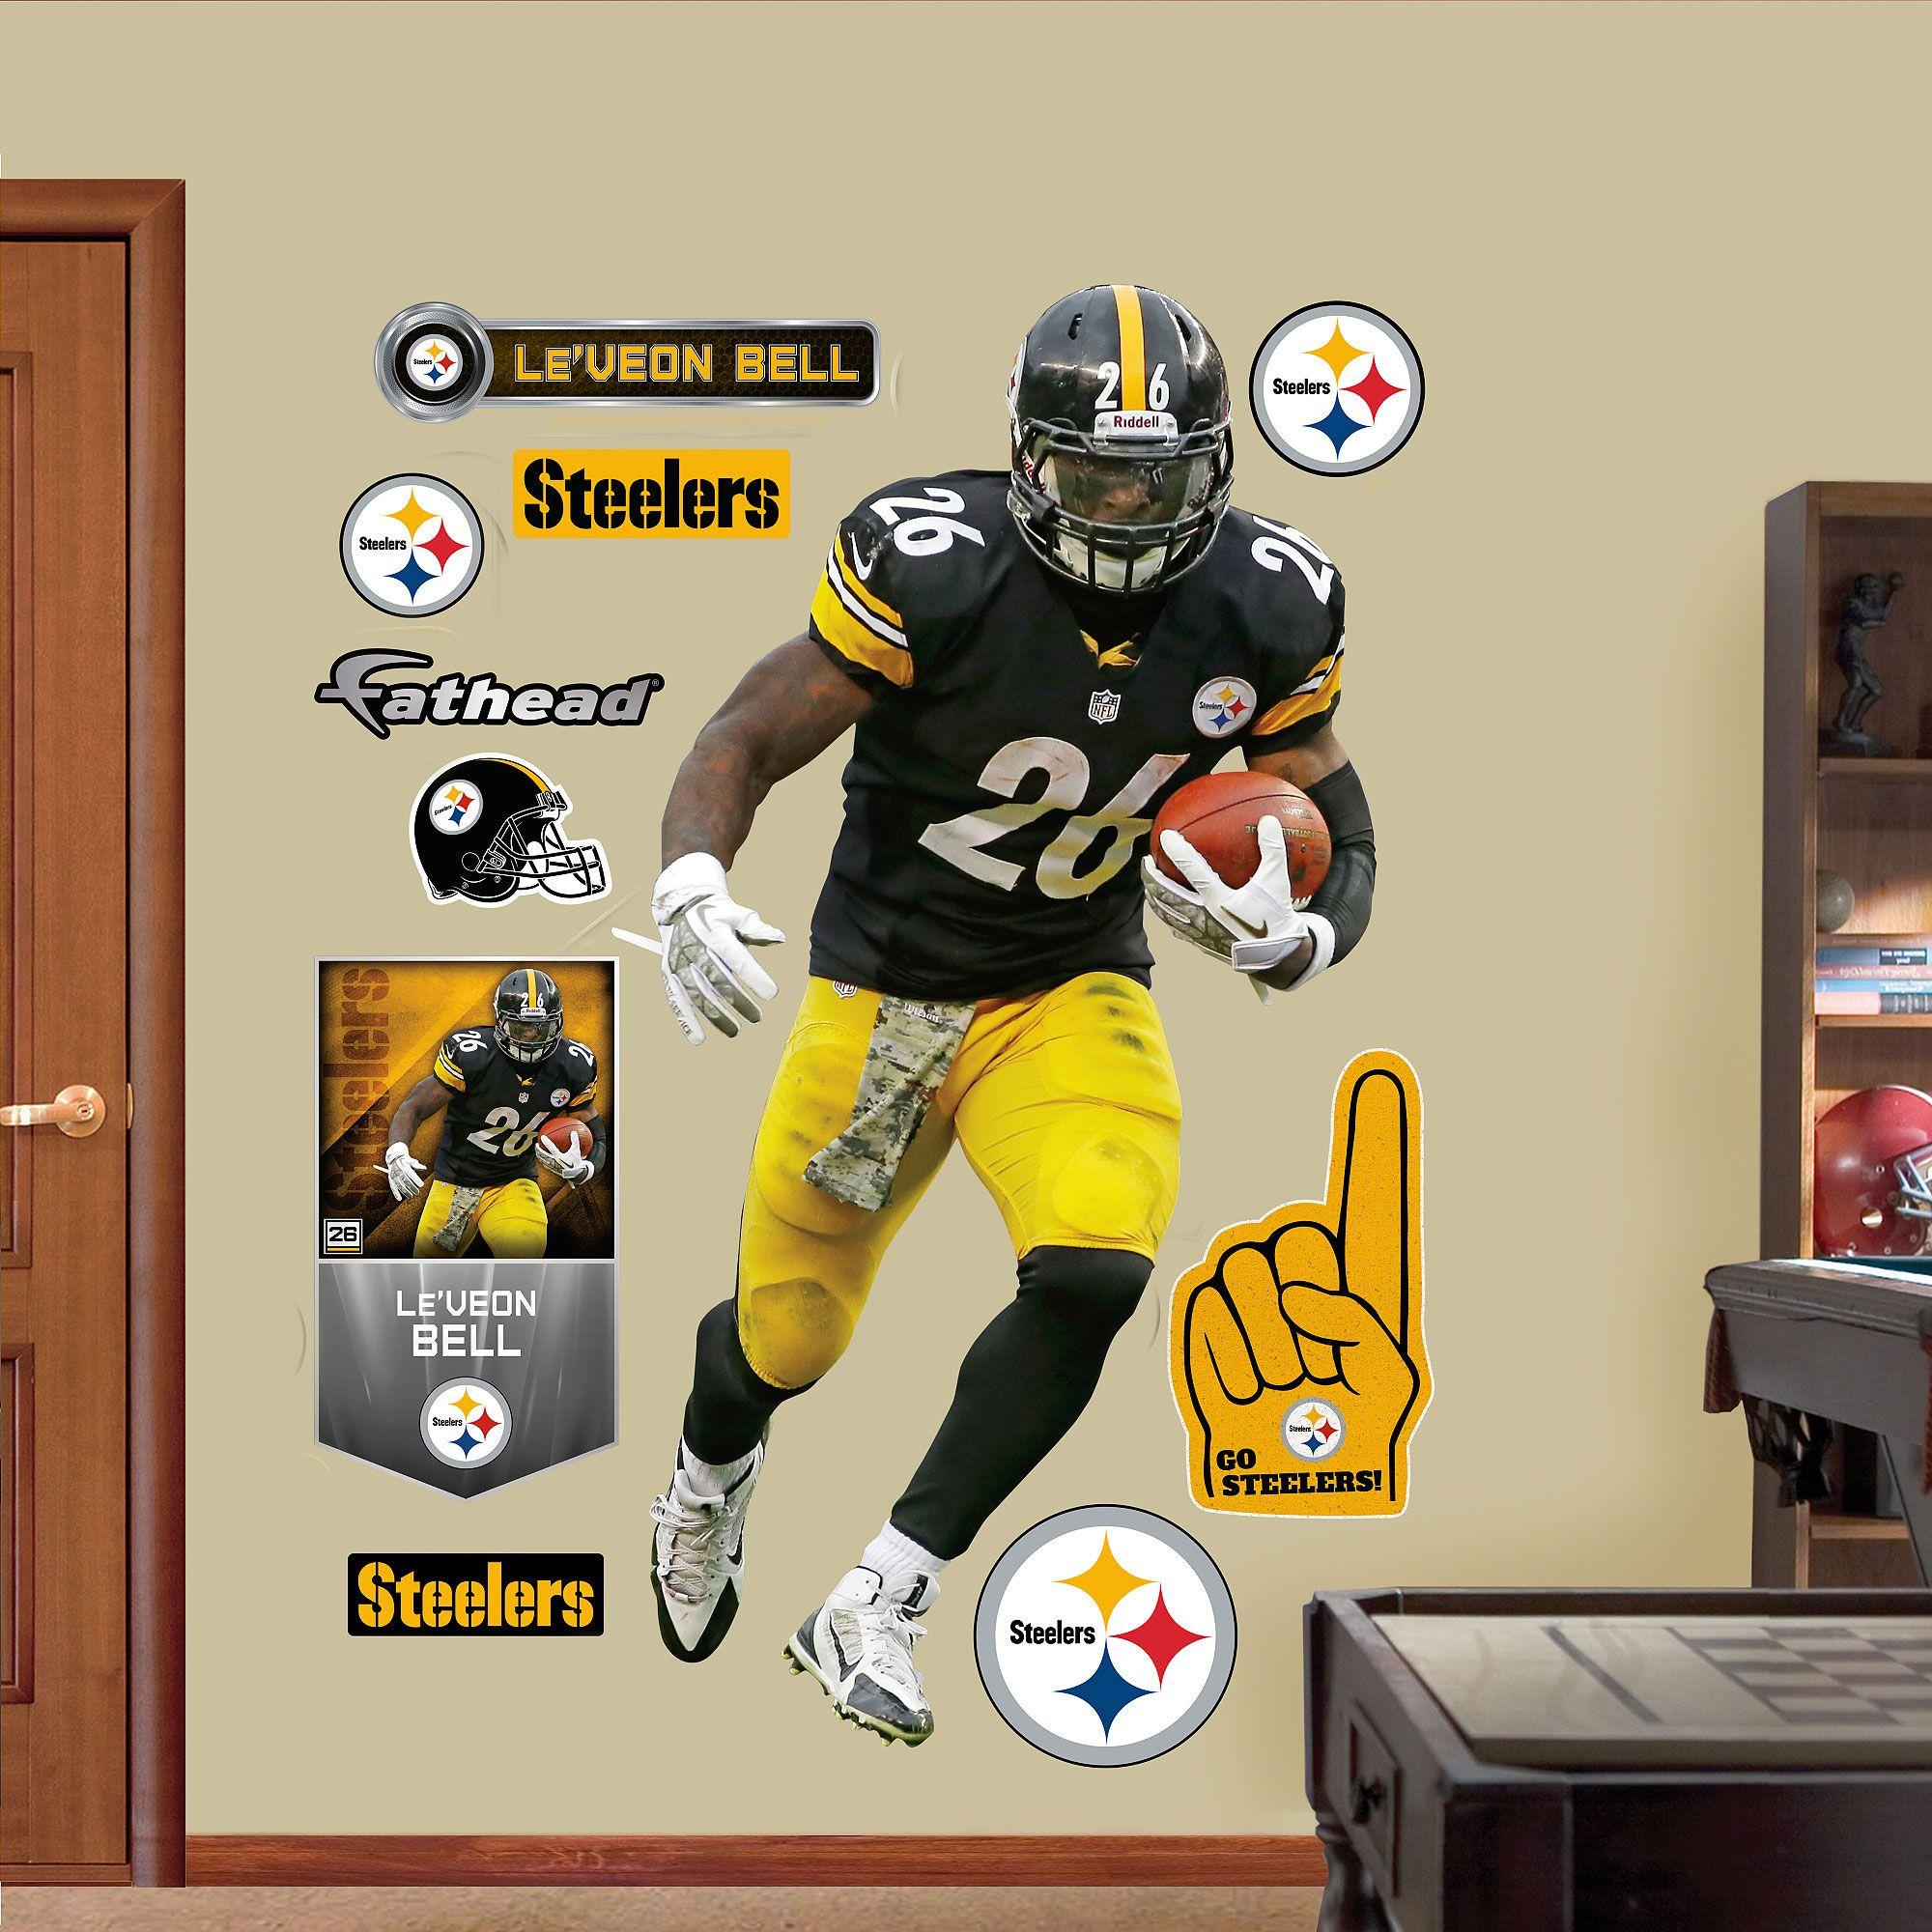 Fathead Le Veon Bell 26 Pittsburgh Steelers Real Big Wall Graphic